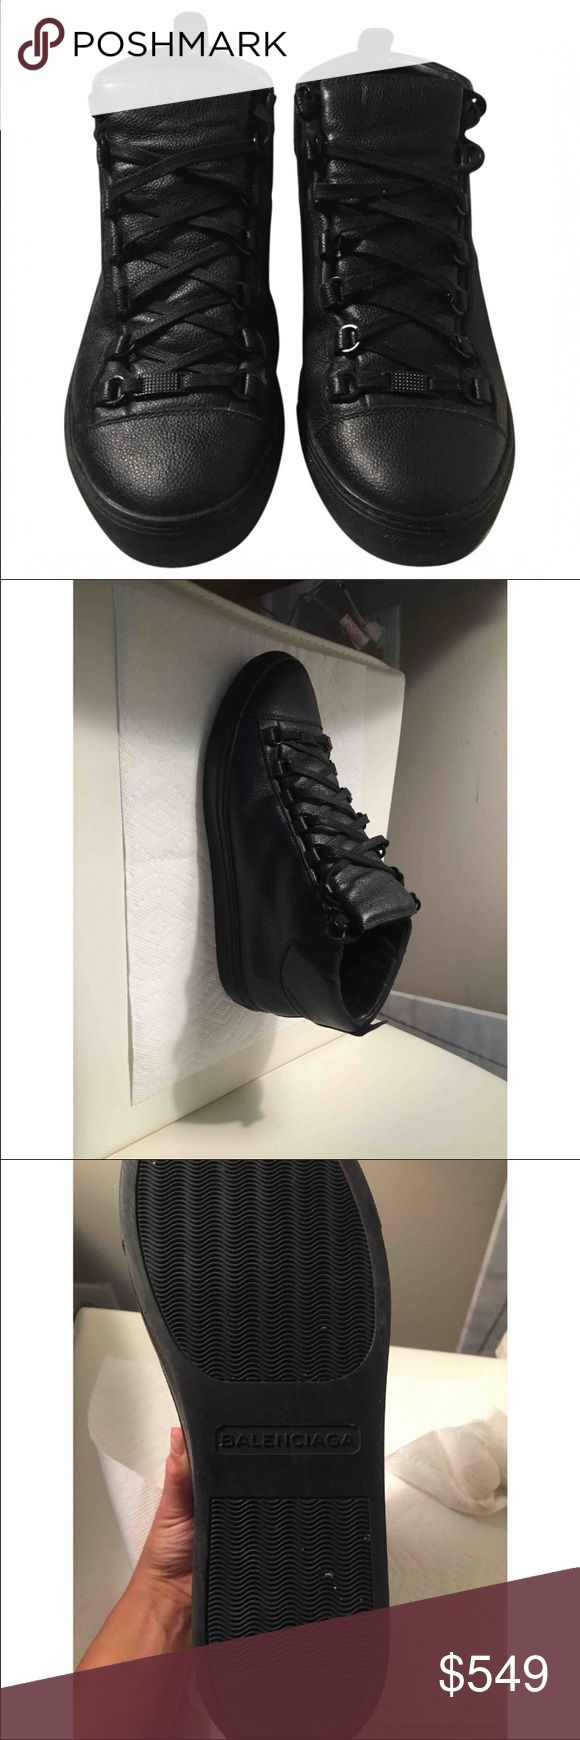 Men's Balenciaga Arena Shoe men's arena sneakers Balenciaga Shoes Sneakers